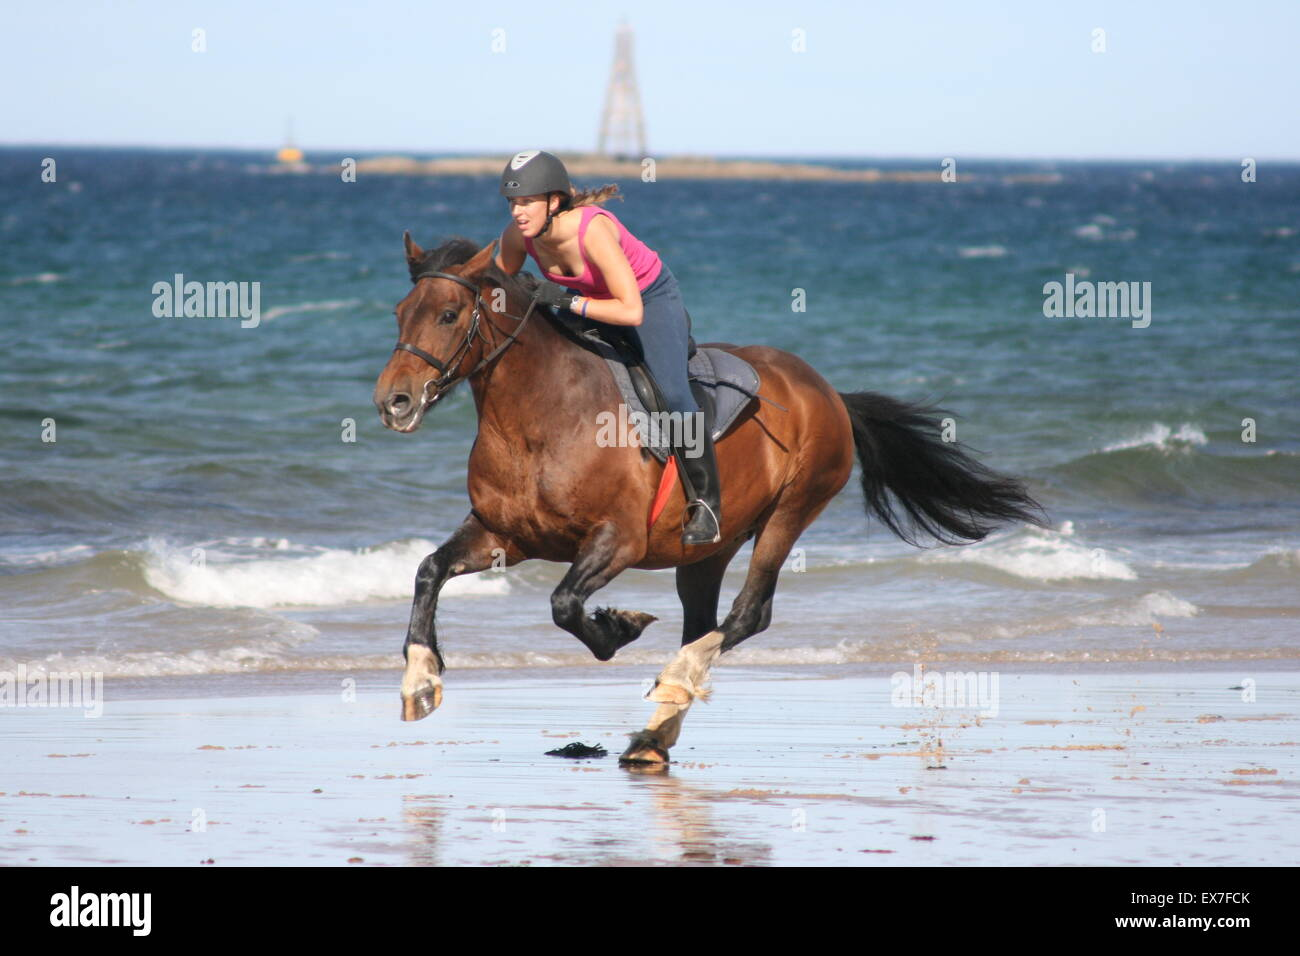 A girl riding a horse down the beach at Lossiemouth in Scotland - Stock Image